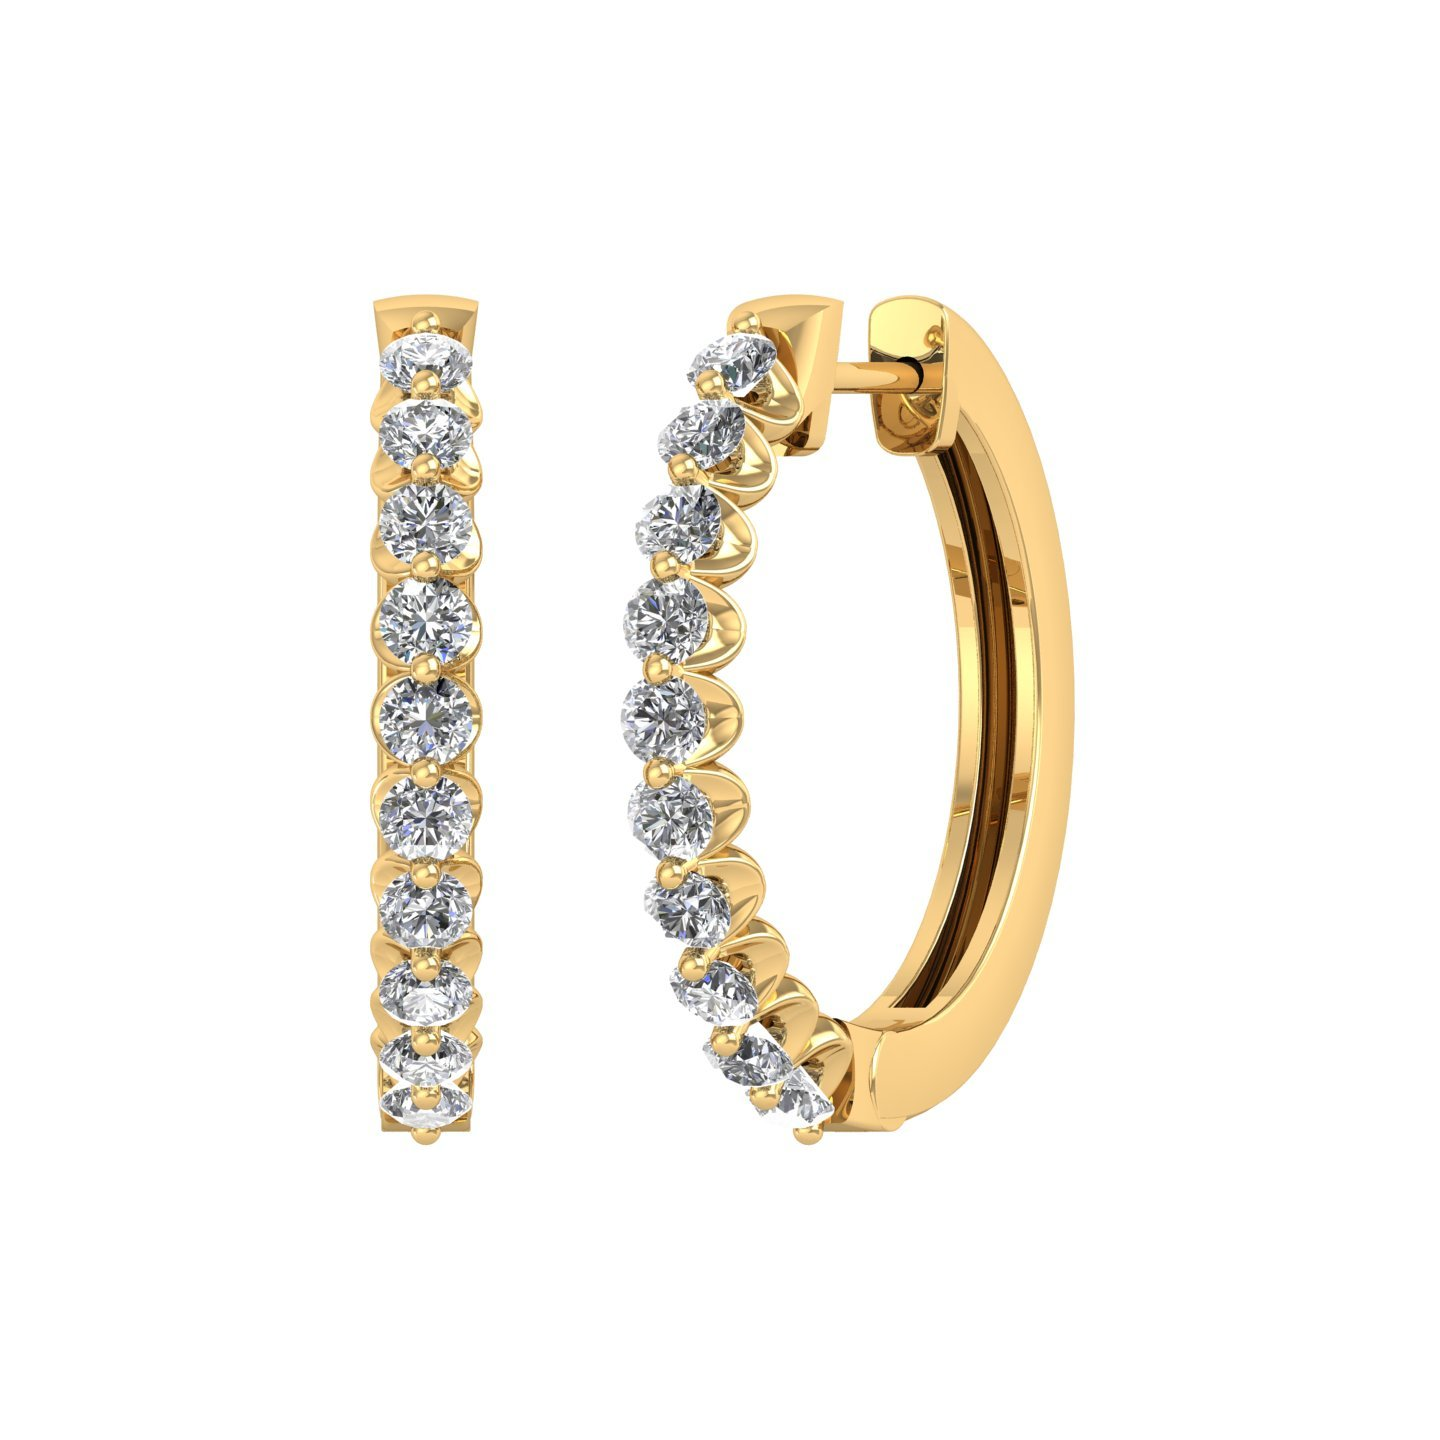 14k Yellow Gold Round Diamond Prong Set Hoop & Huggies Earring (1/2 Carat)